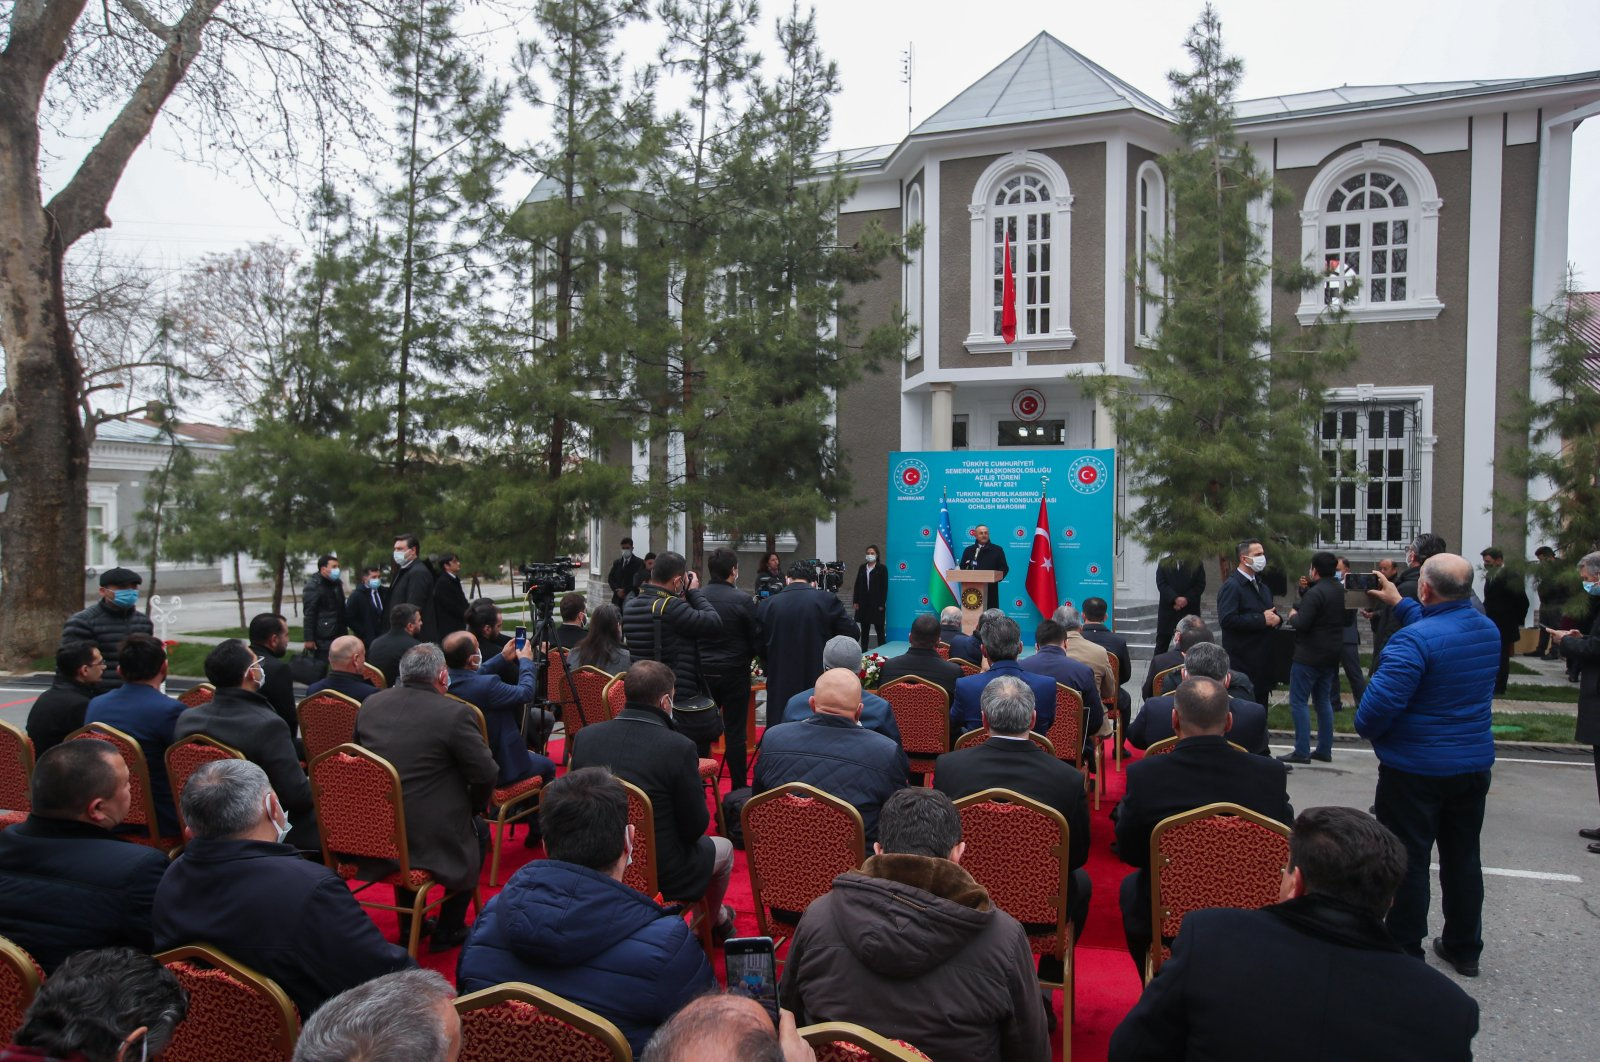 Foreign Minister Mevlüt Çavuşoğlu speaks at the inauguration ceremony of the new Turkish Consulate-General in the Uzbek city of Samarkand on Sunday, March 7, 2021 (AA Photo)